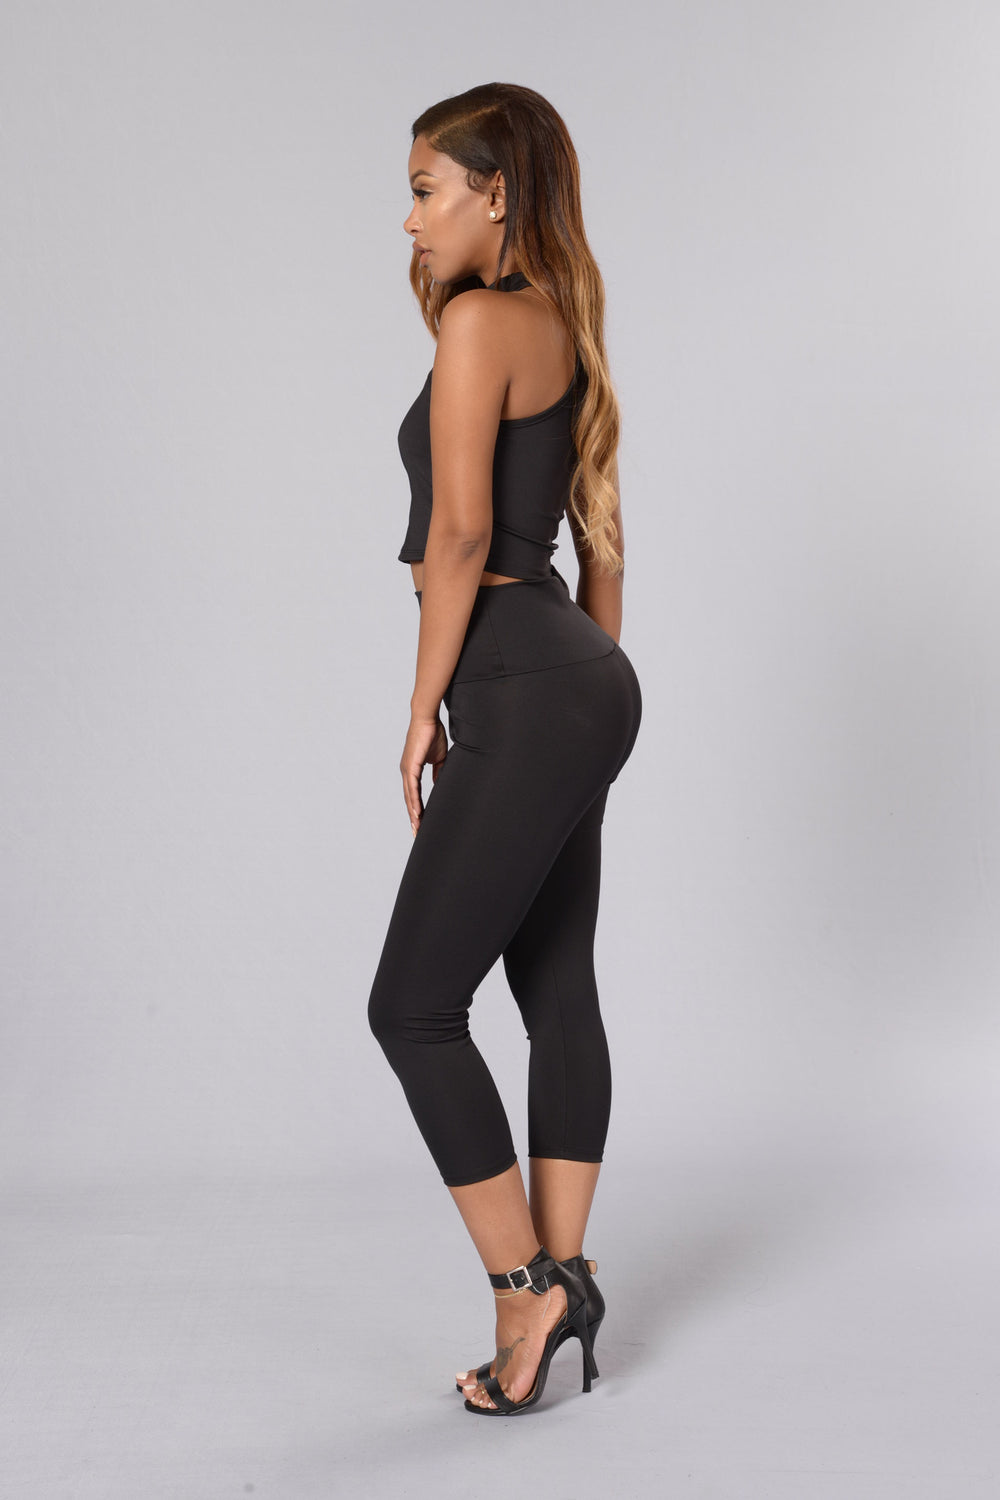 Second Skin Leggings - Black